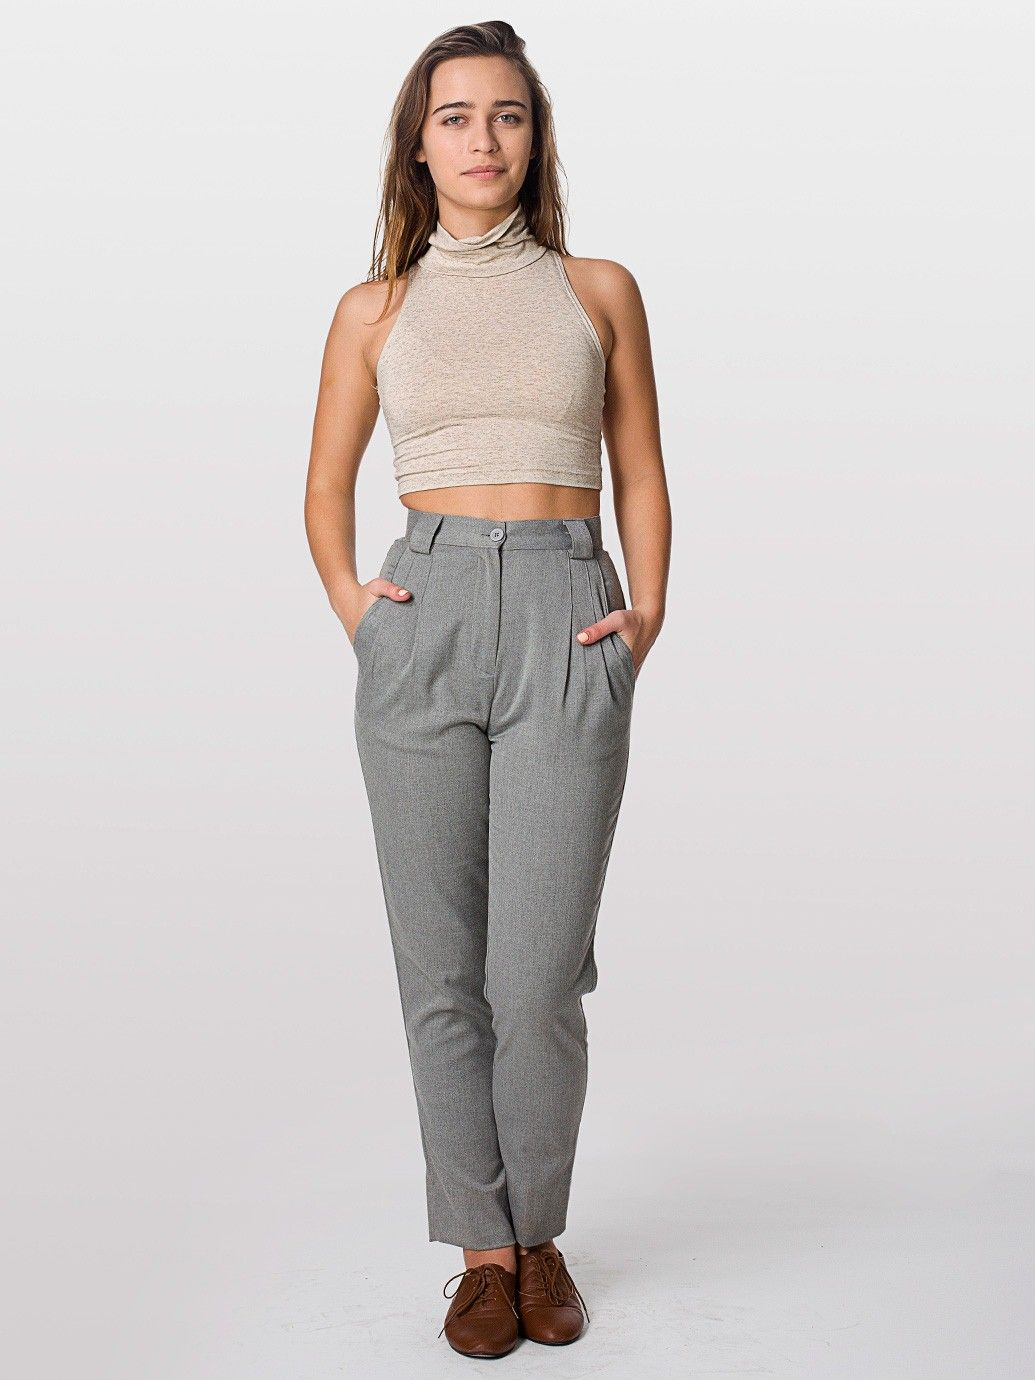 Linen High-Waist Pleated Pant | Women's pants, My name and Linens